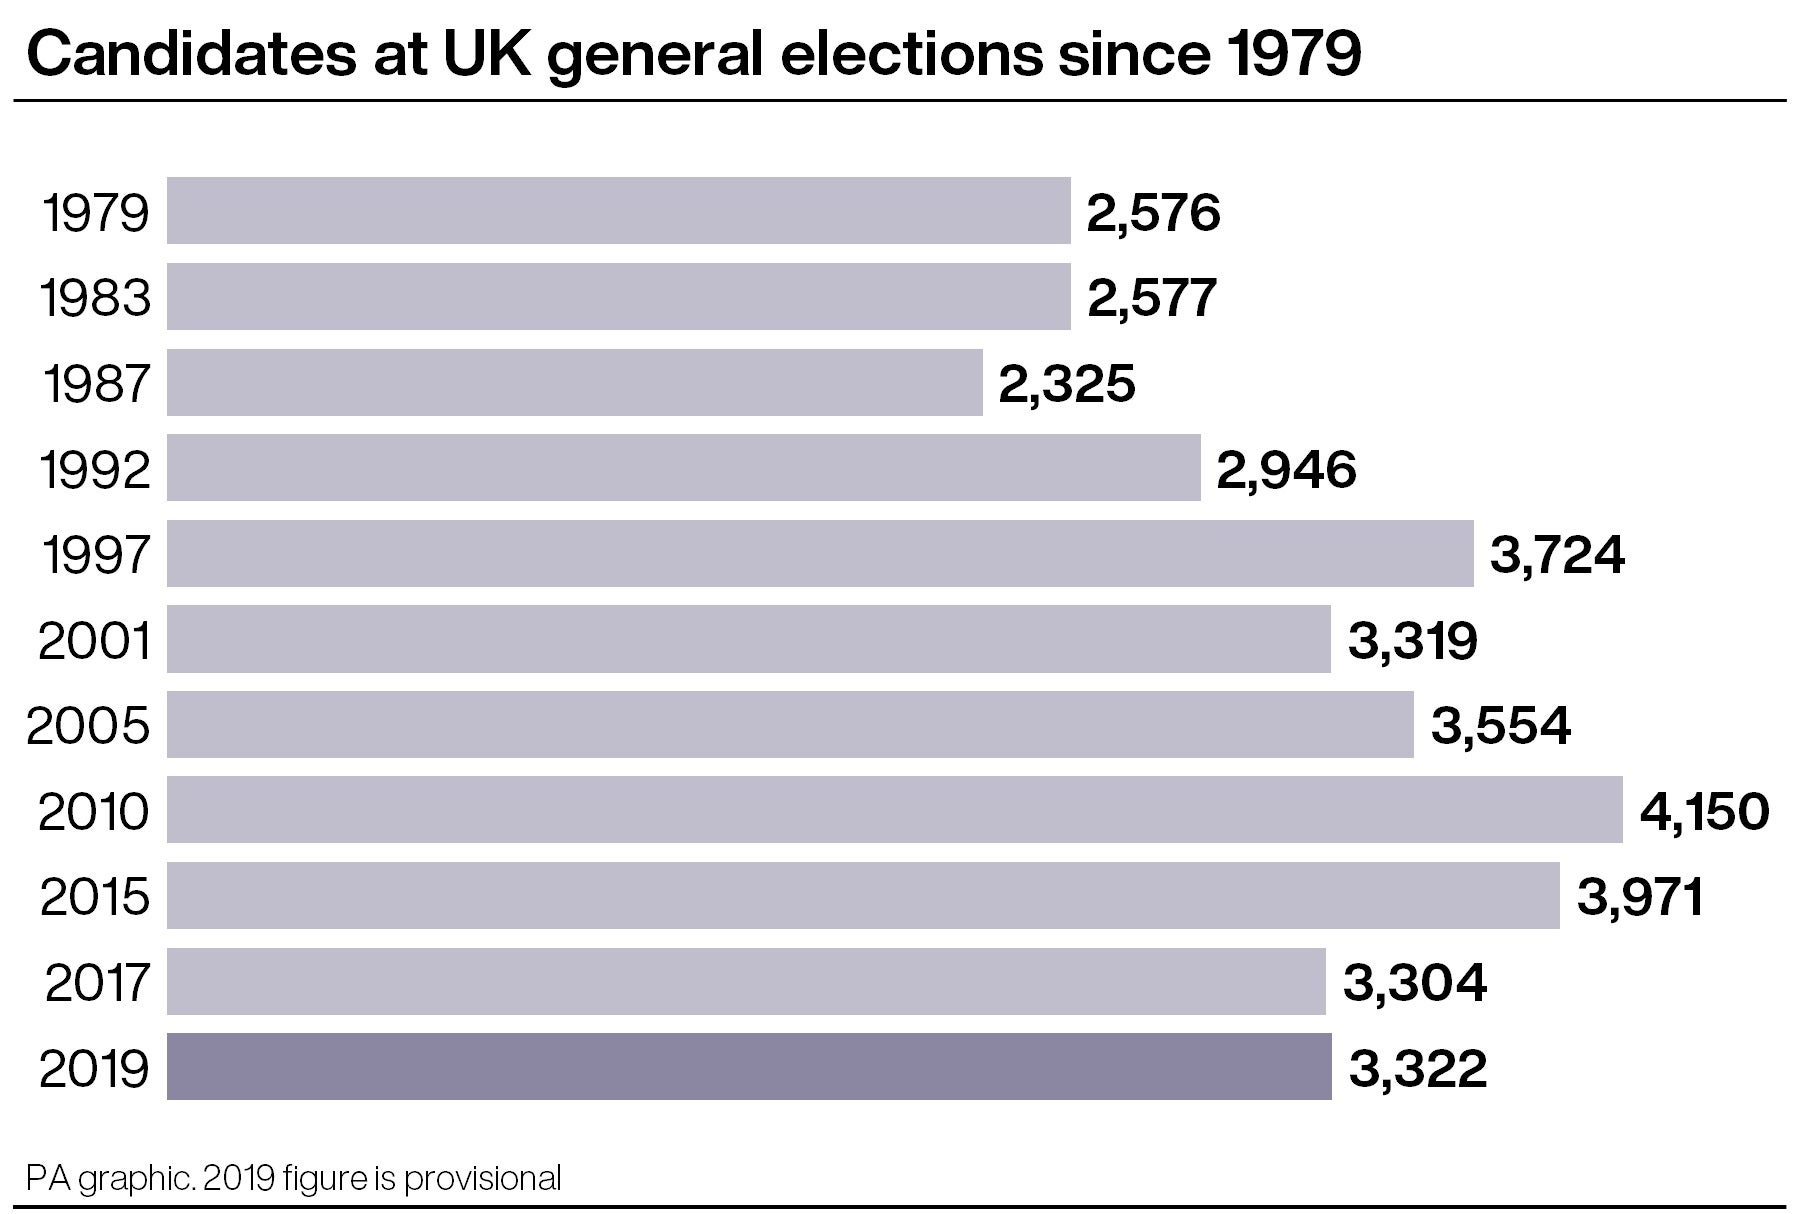 Candidates at UK general elections since 1979